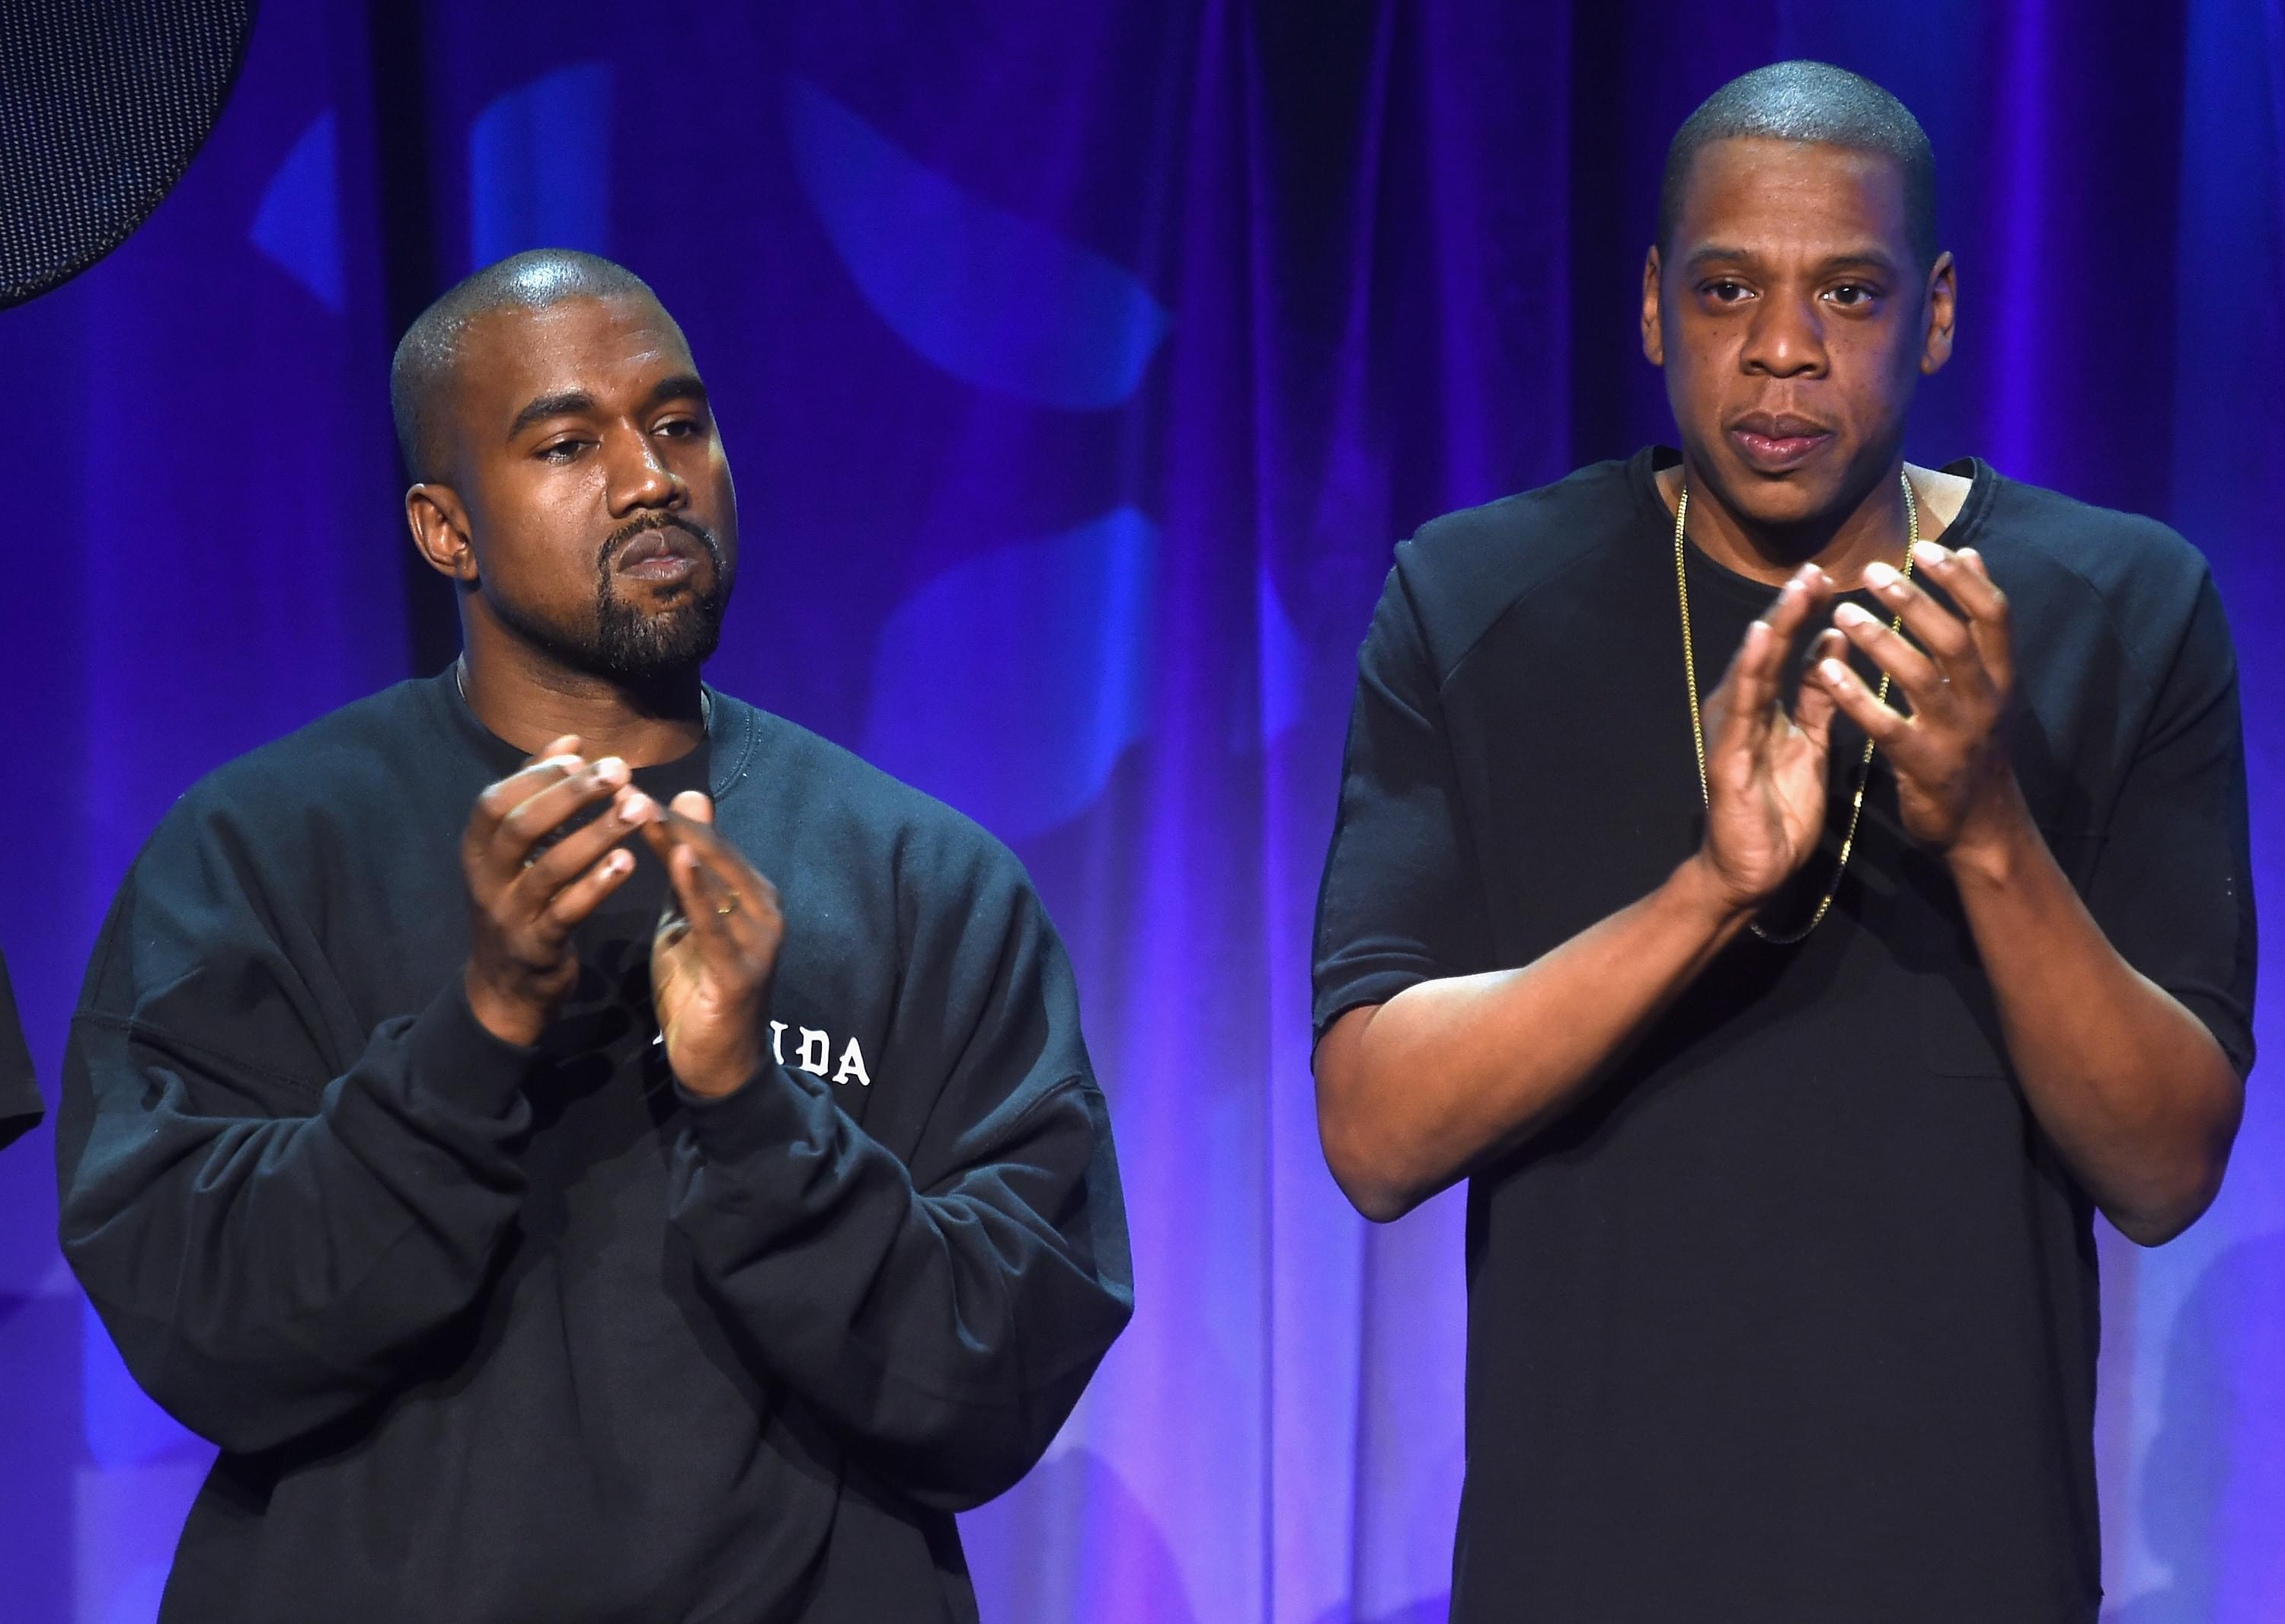 Jay-Z Disses Kanye West On New Meek Mill Album 'Championships'